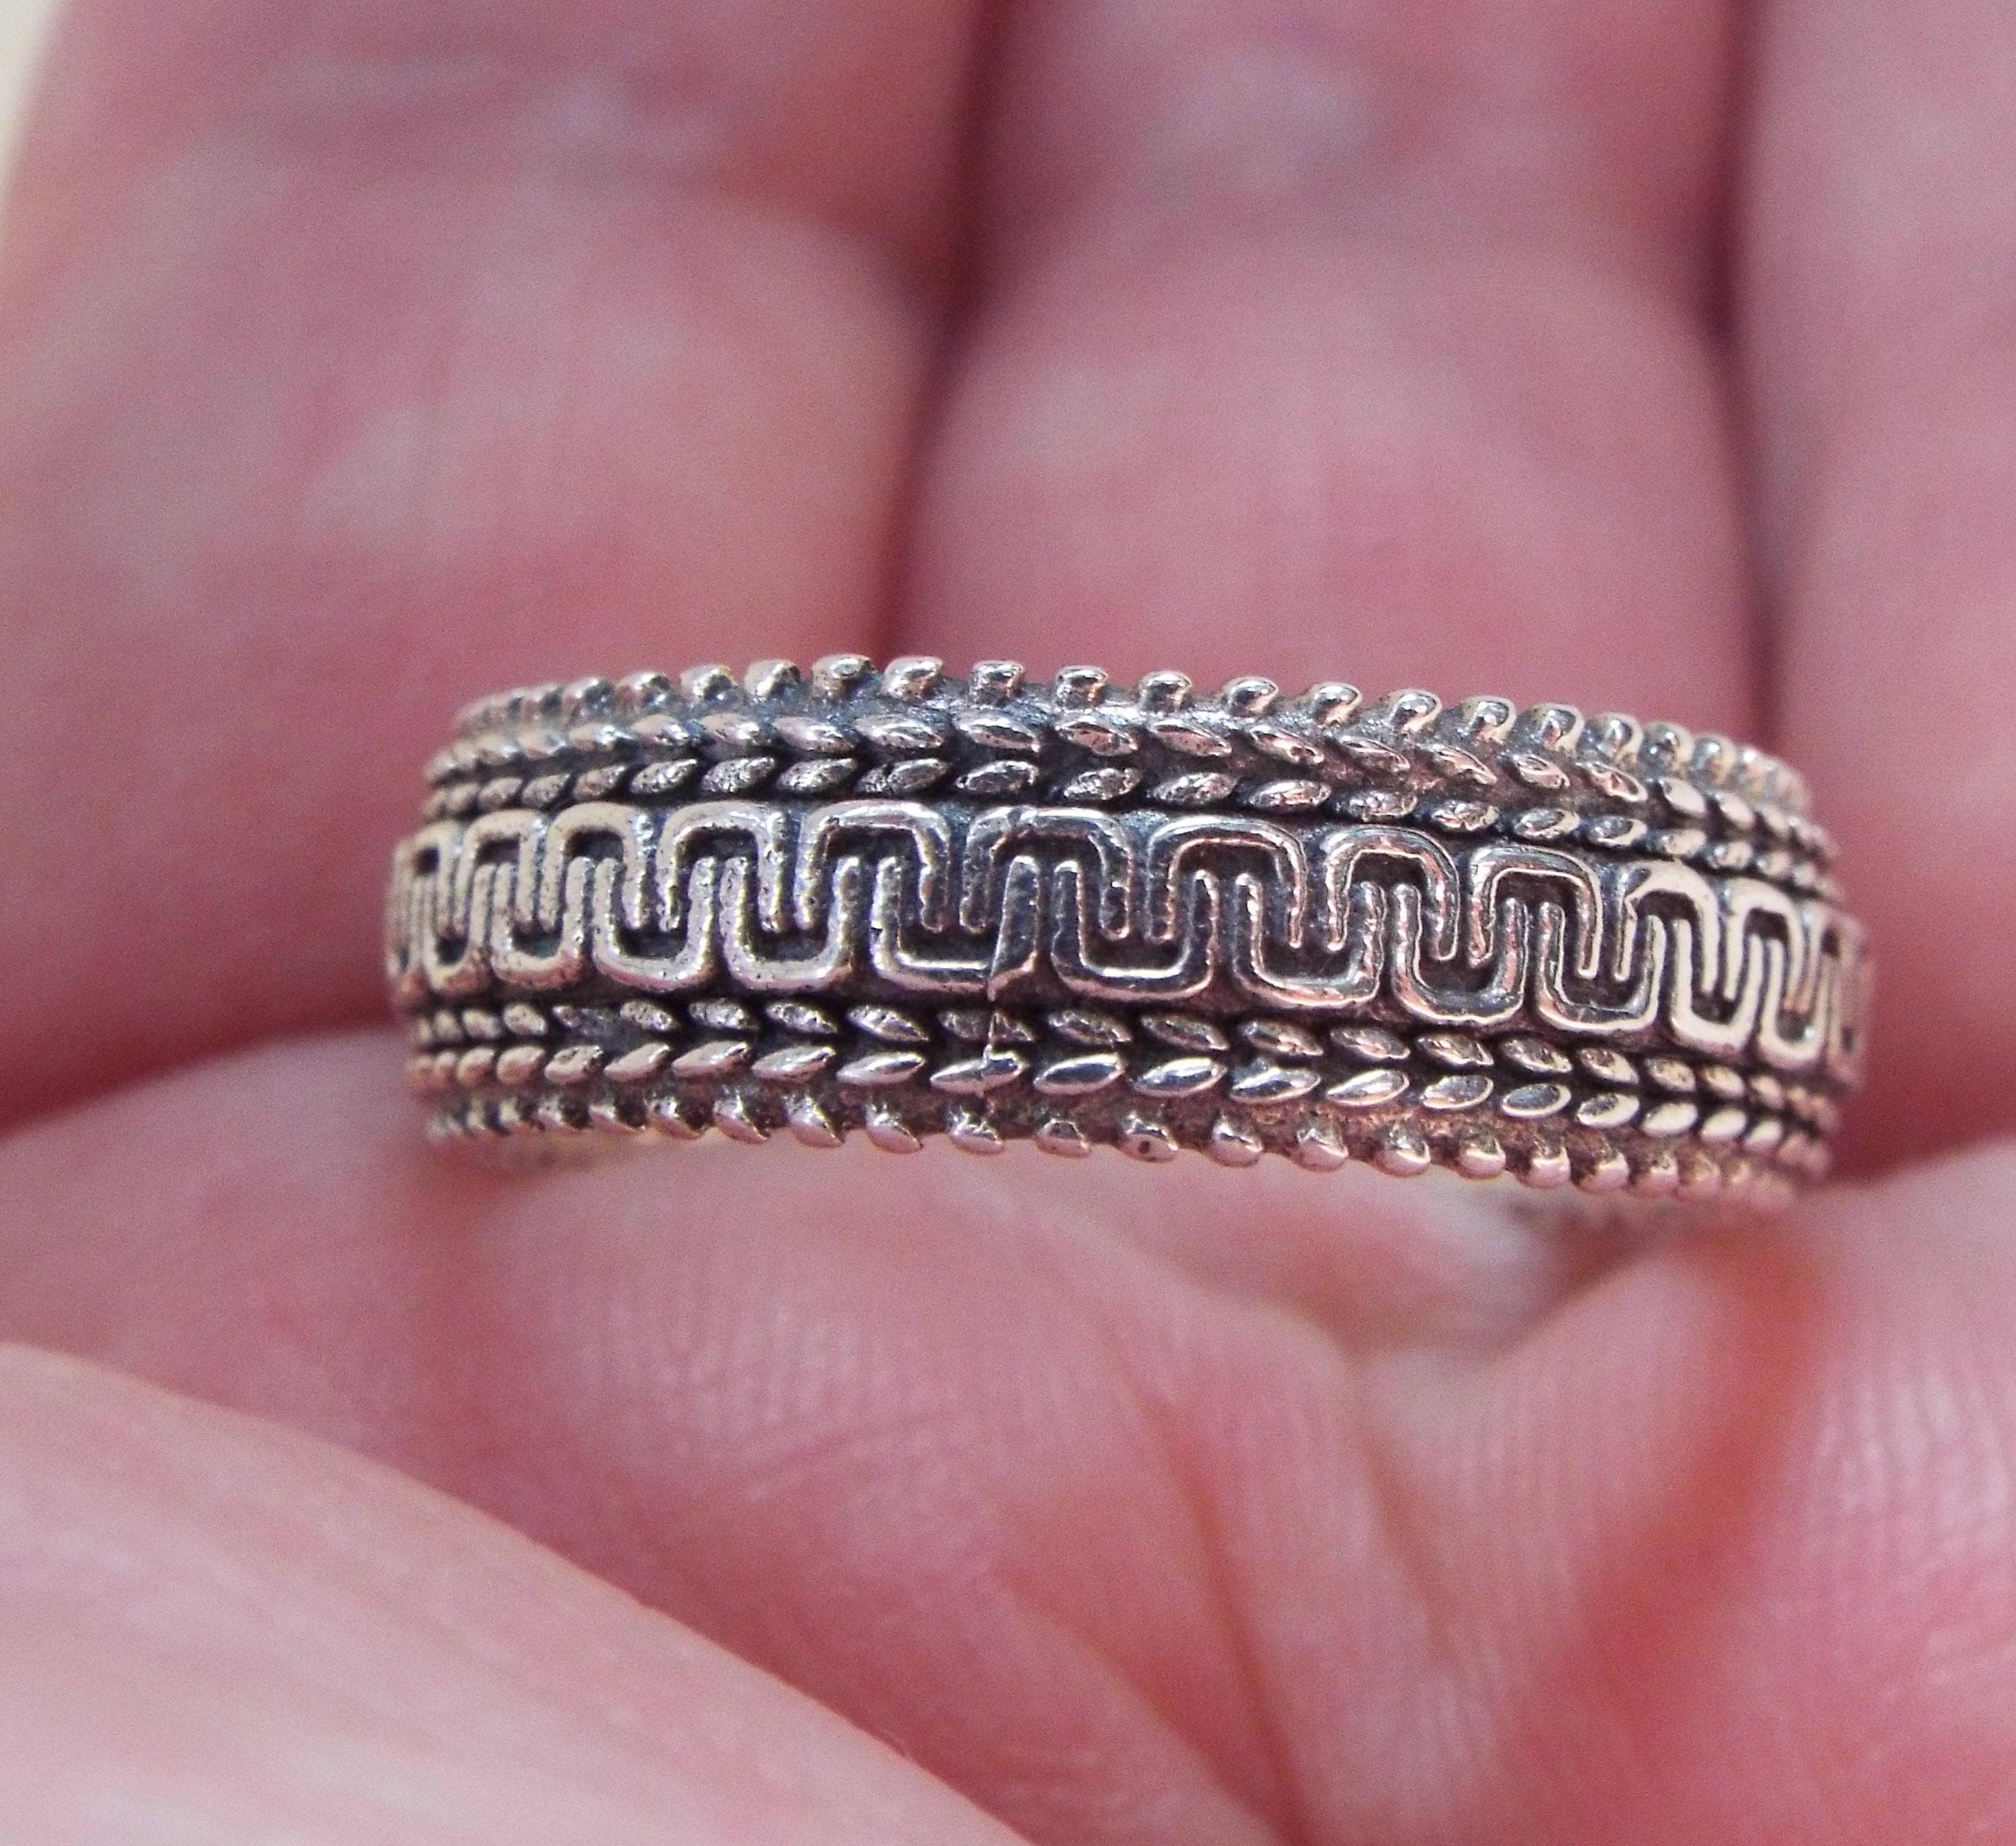 Clearance SALESolid 925 Sterling Silver Engraved Band Ring